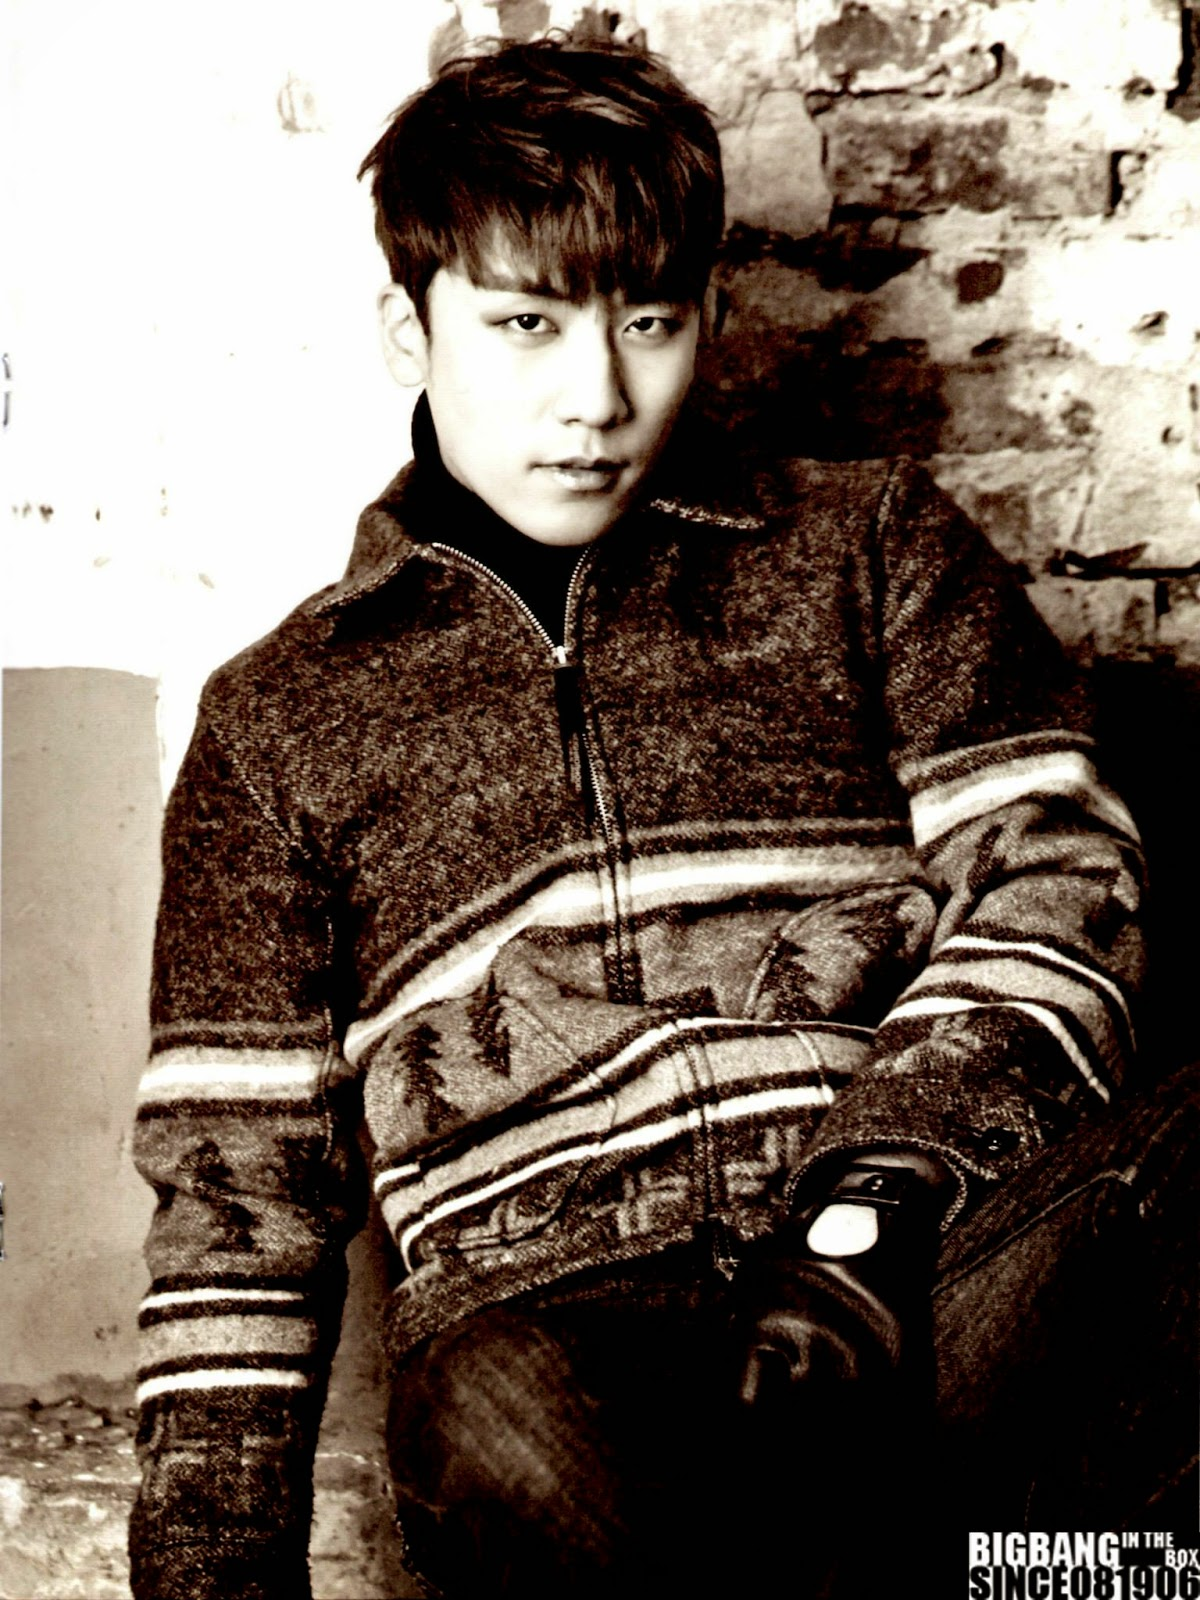 Scans: Big Bang's 2015 Welcoming Collection [PHOTOS]  Scans: Big Bang's 2015 Welcoming Collection [PHOTOS]  Scans: Big Bang's 2015 Welcoming Collection [PHOTOS]  Scans: Big Bang's 2015 Welcoming Collection [PHOTOS]  Scans: Big Bang's 2015 Welcoming Collection [PHOTOS]  Scans: Big Bang's 2015 Welcoming Collection [PHOTOS]  Scans: Big Bang's 2015 Welcoming Collection [PHOTOS]  Scans: Big Bang's 2015 Welcoming Collection [PHOTOS]  Scans: Big Bang's 2015 Welcoming Collection [PHOTOS]  Scans: Big Bang's 2015 Welcoming Collection [PHOTOS]  Scans: Big Bang's 2015 Welcoming Collection [PHOTOS]  Scans: Big Bang's 2015 Welcoming Collection [PHOTOS]  Scans: Big Bang's 2015 Welcoming Collection [PHOTOS]  Scans: Big Bang's 2015 Welcoming Collection [PHOTOS]  Scans: Big Bang's 2015 Welcoming Collection [PHOTOS]  Scans: Big Bang's 2015 Welcoming Collection [PHOTOS]  Scans: Big Bang's 2015 Welcoming Collection [PHOTOS]  Scans: Big Bang's 2015 Welcoming Collection [PHOTOS]  Scans: Big Bang's 2015 Welcoming Collection [PHOTOS]  Scans: Big Bang's 2015 Welcoming Collection [PHOTOS]  Scans: Big Bang's 2015 Welcoming Collection [PHOTOS]